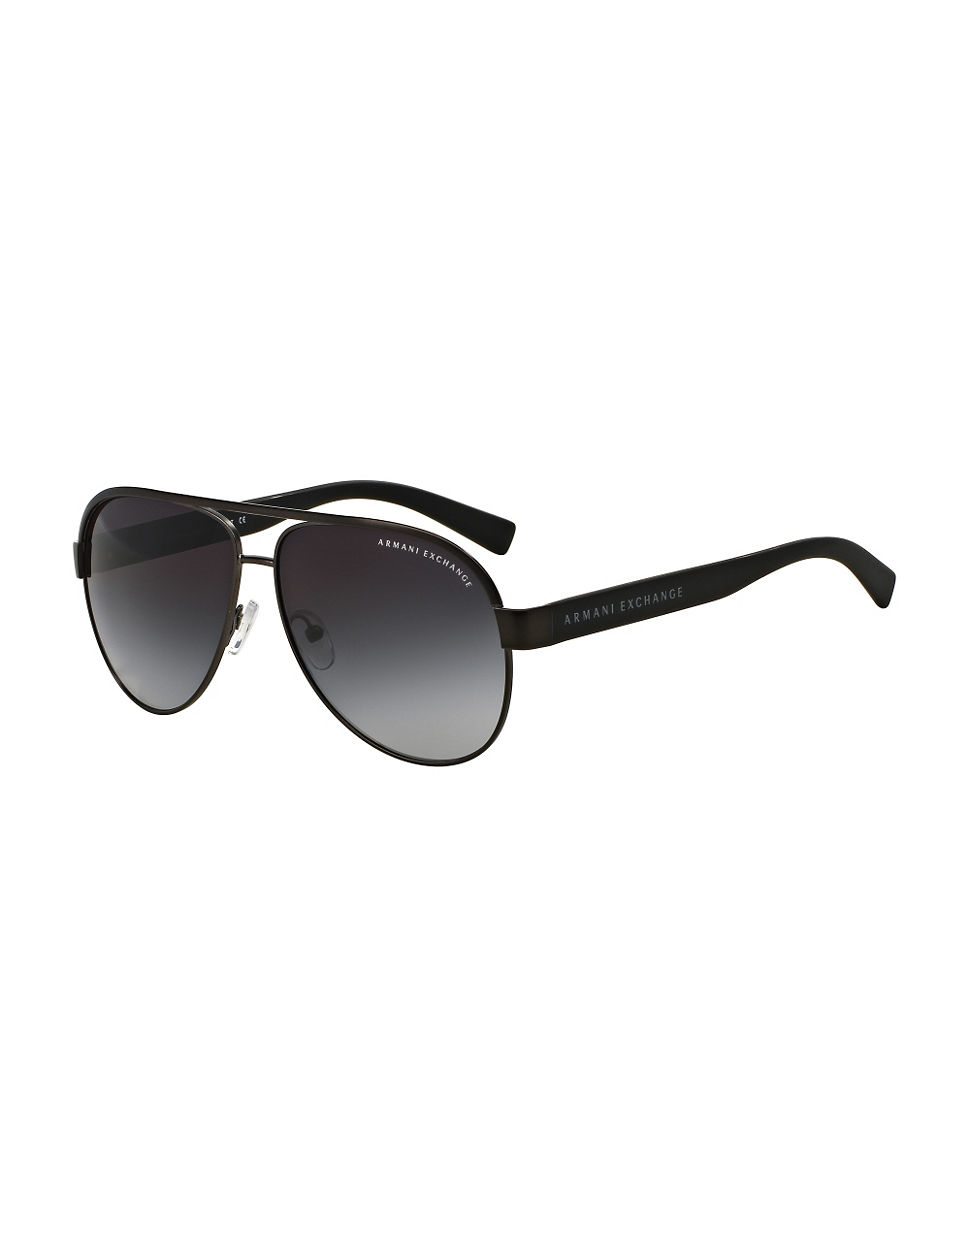 8b8f9177a90 Armani Exchange Sunglasses For Women